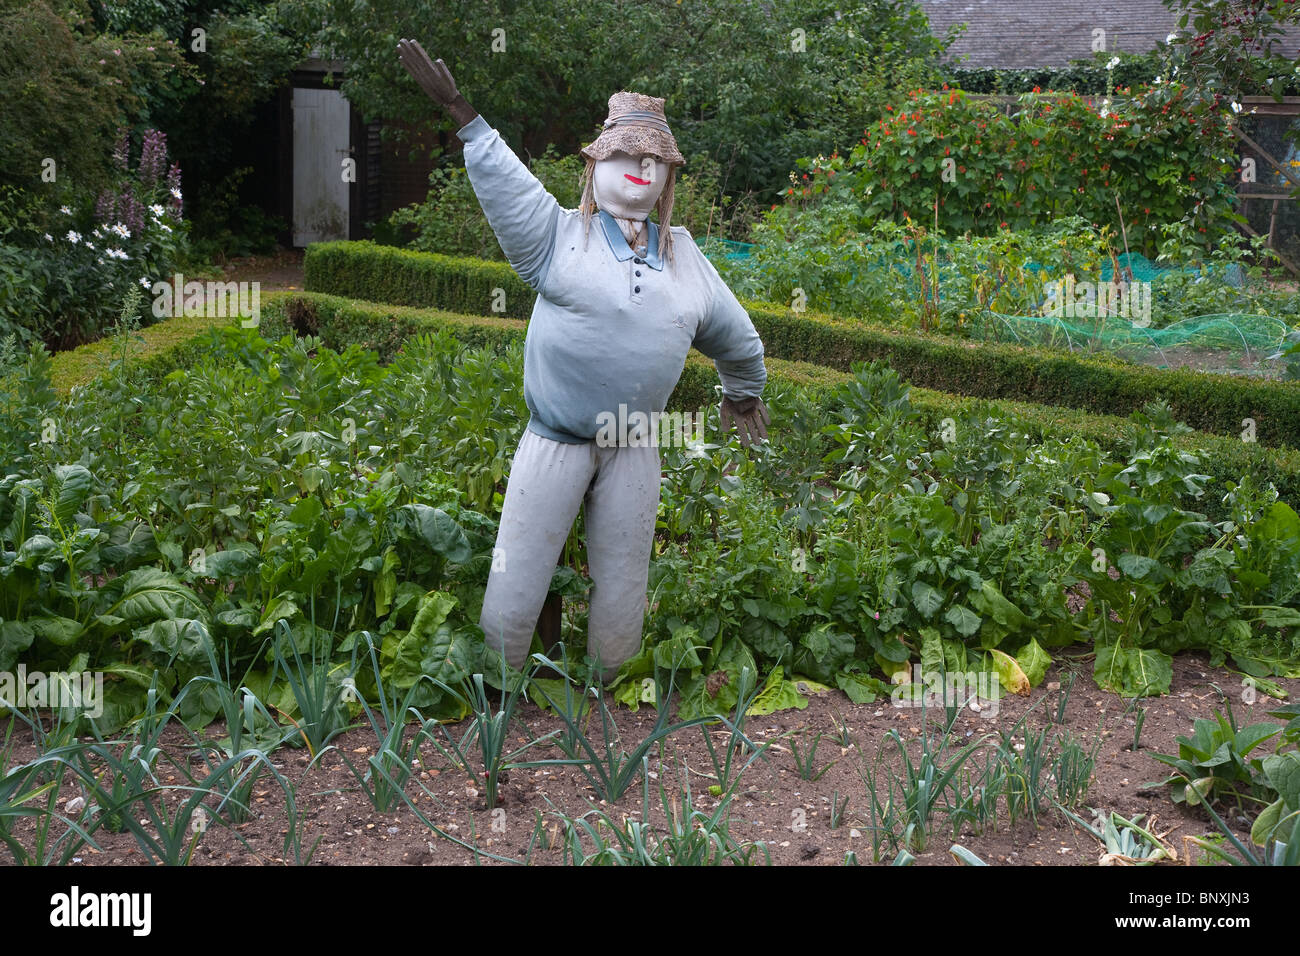 Garden Scare Crow in vegetable patch - Stock Image